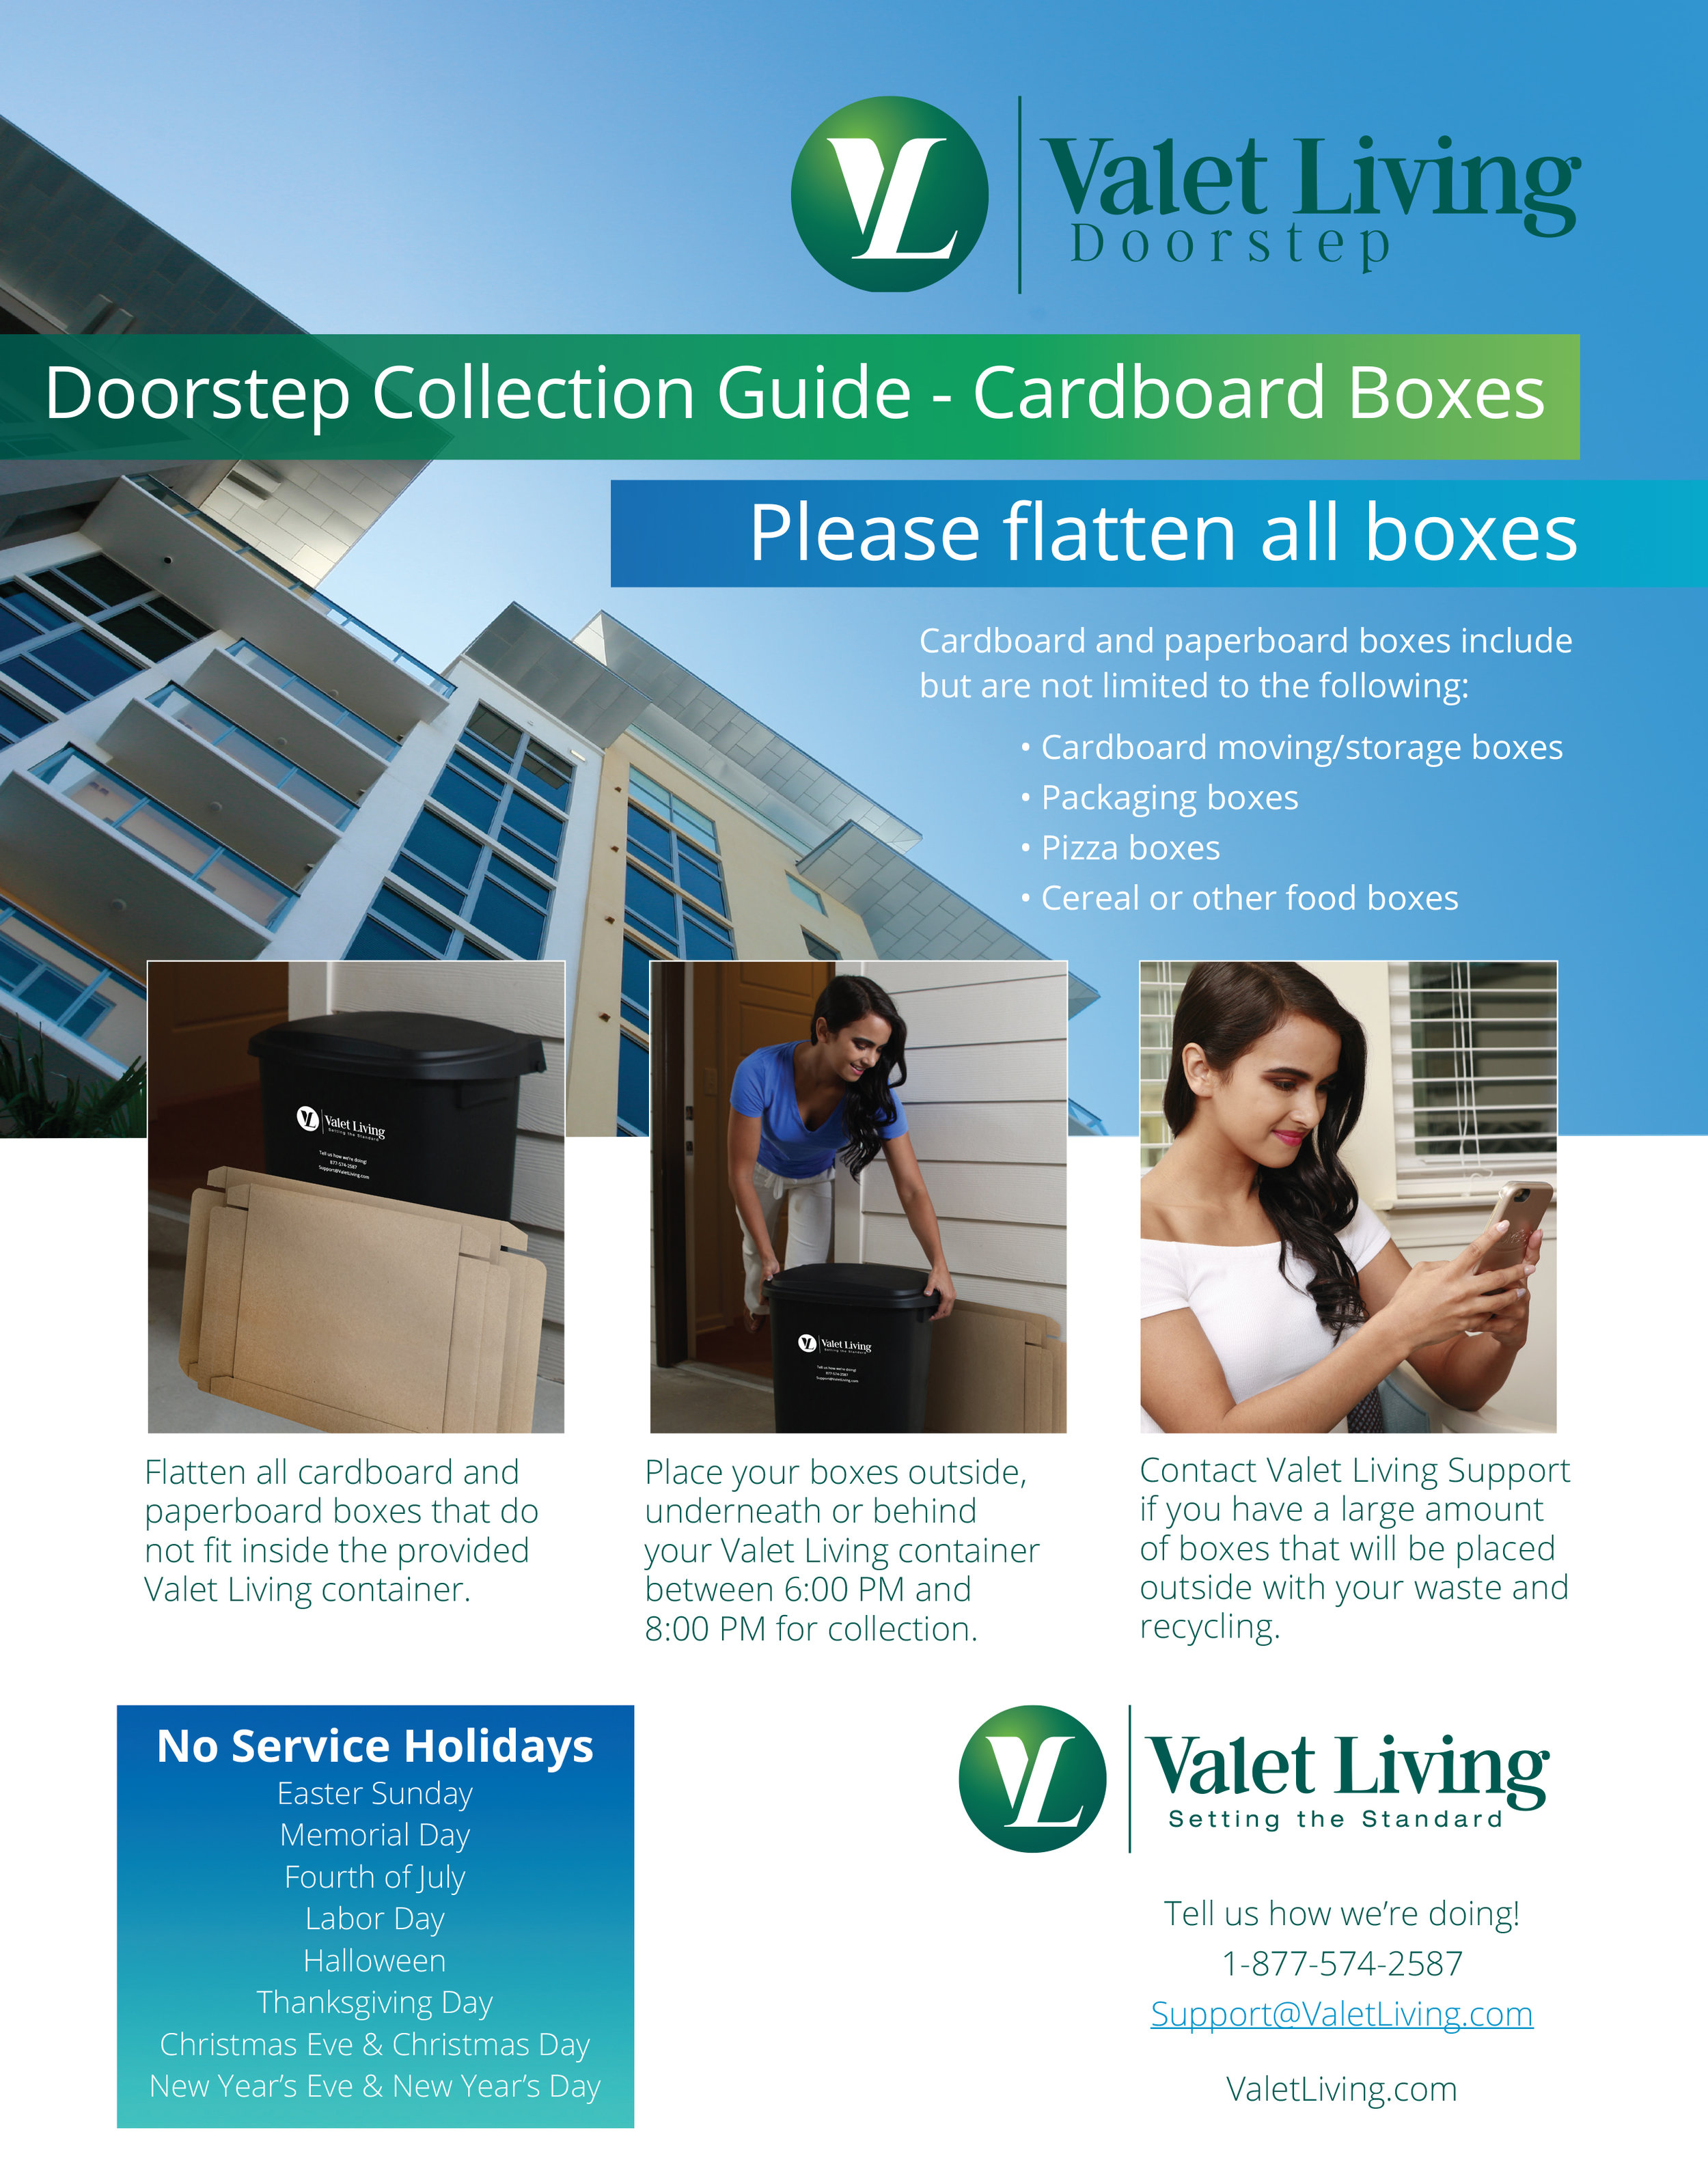 Valet Living Recycling Box Flattening Information